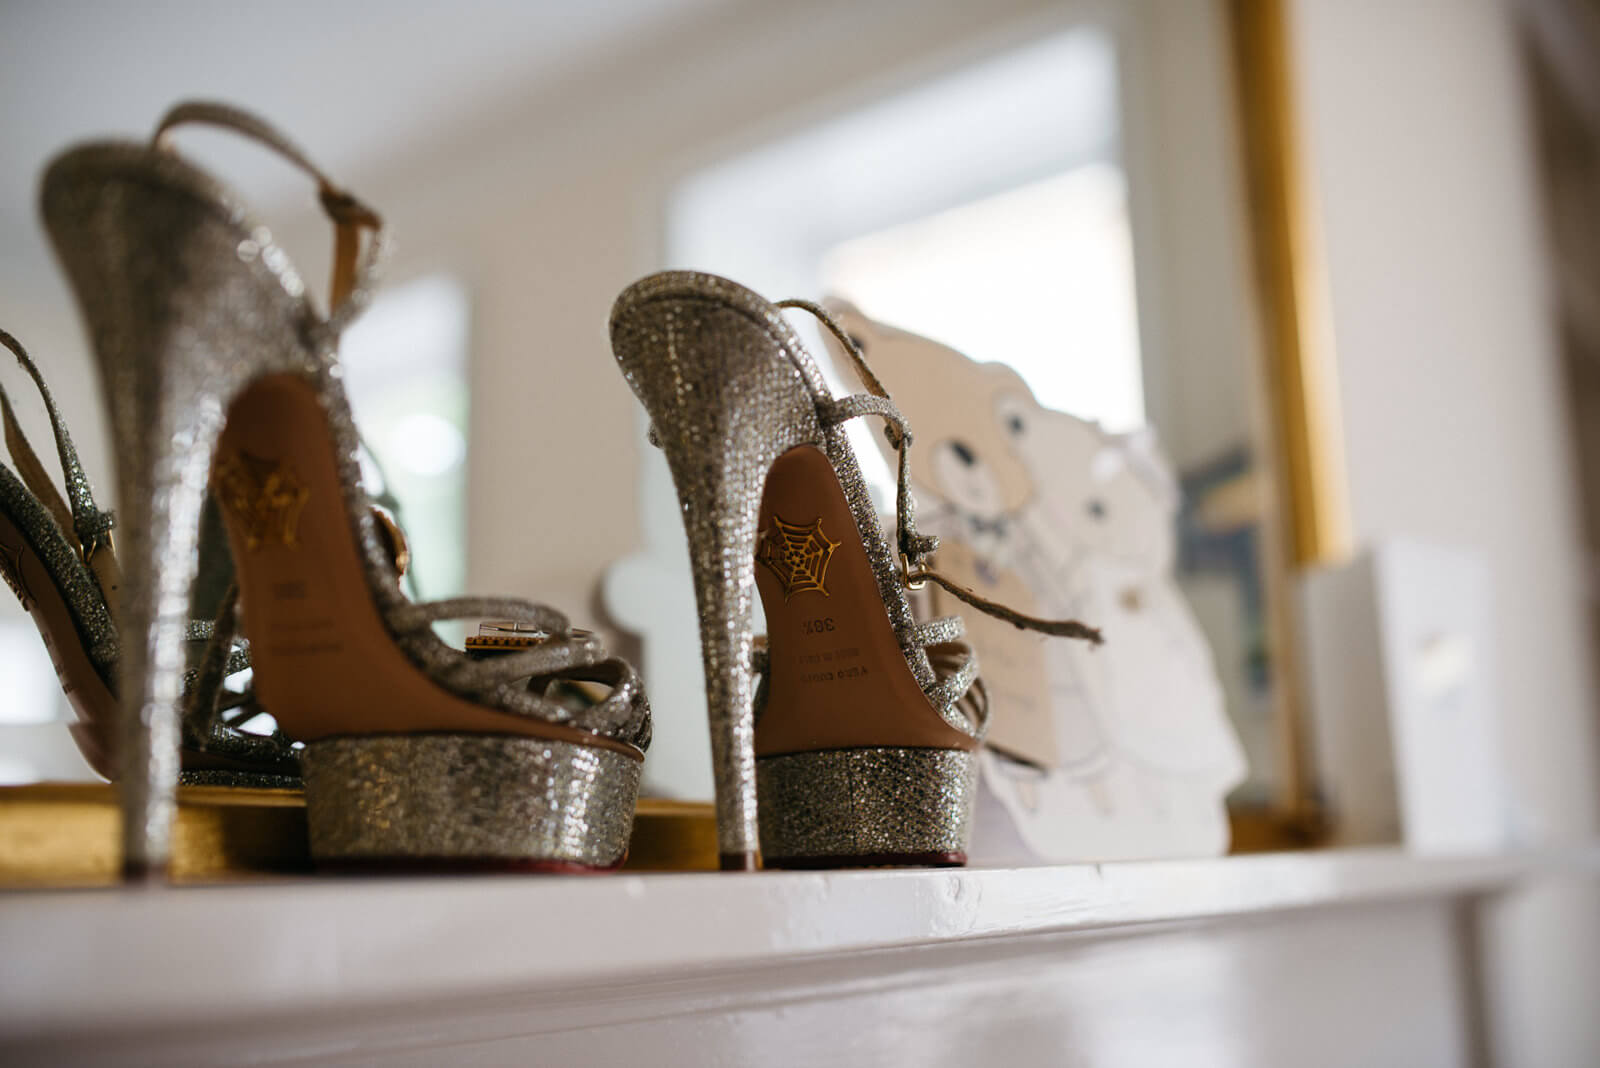 Charlotte Olympia wedding shoes on fireplace